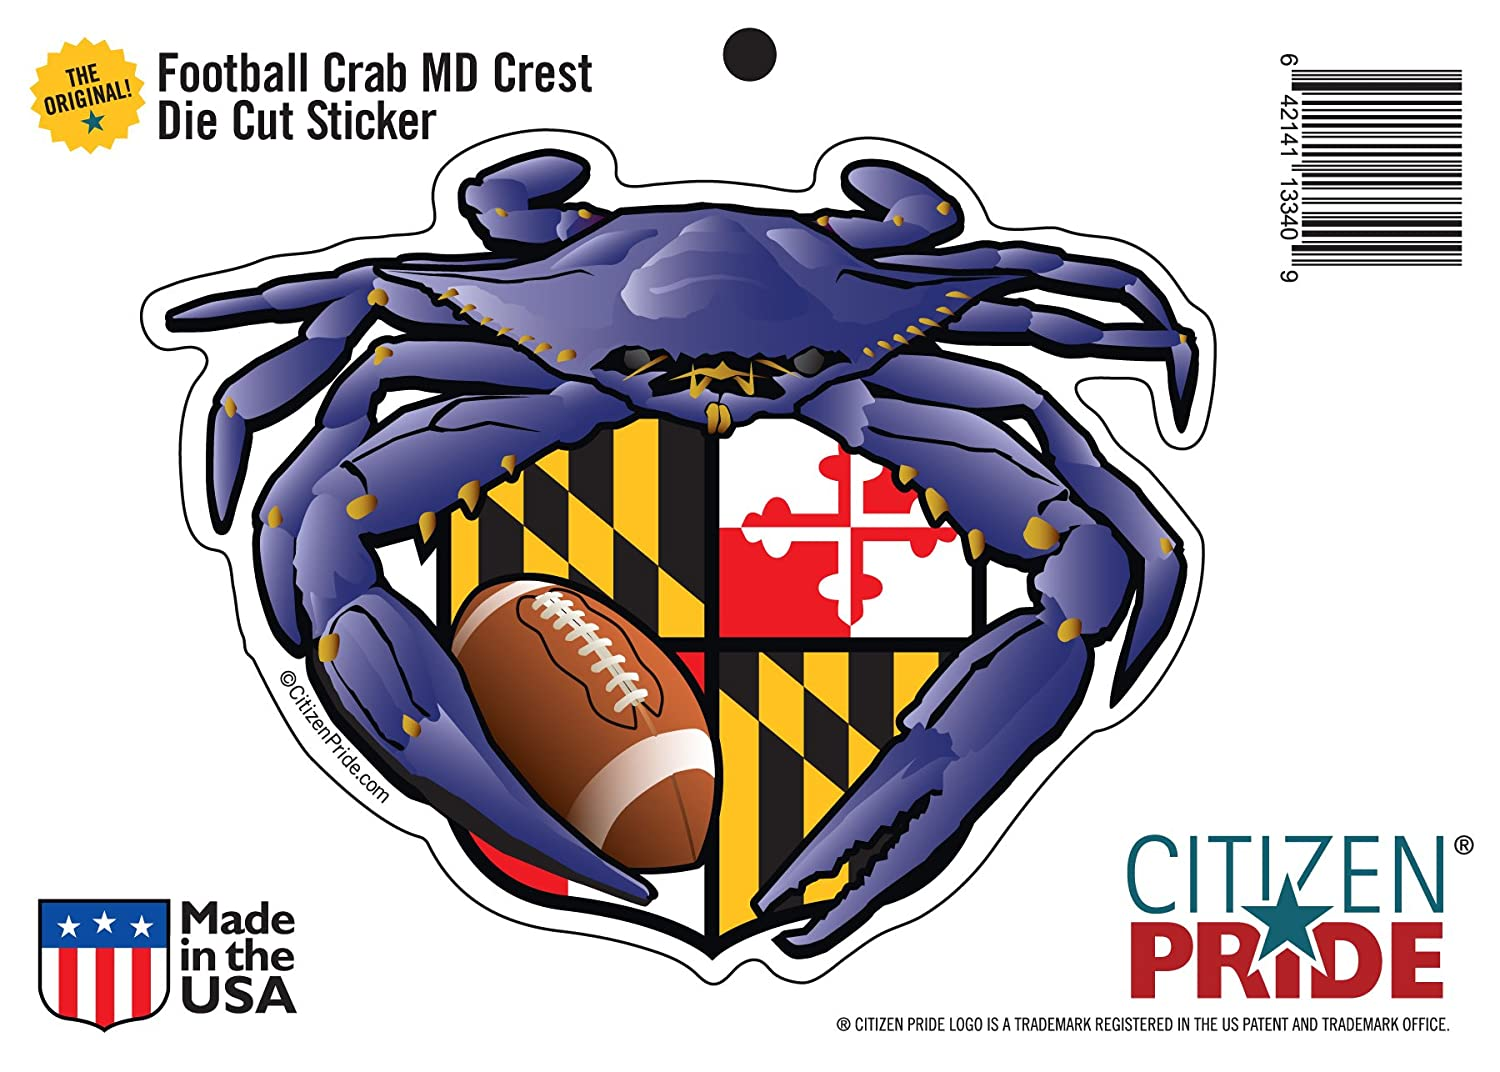 Amazon com citizen pride raven crab football maryland crest 5x4 inches sticker decal die cut vinyl made in usa sports outdoors